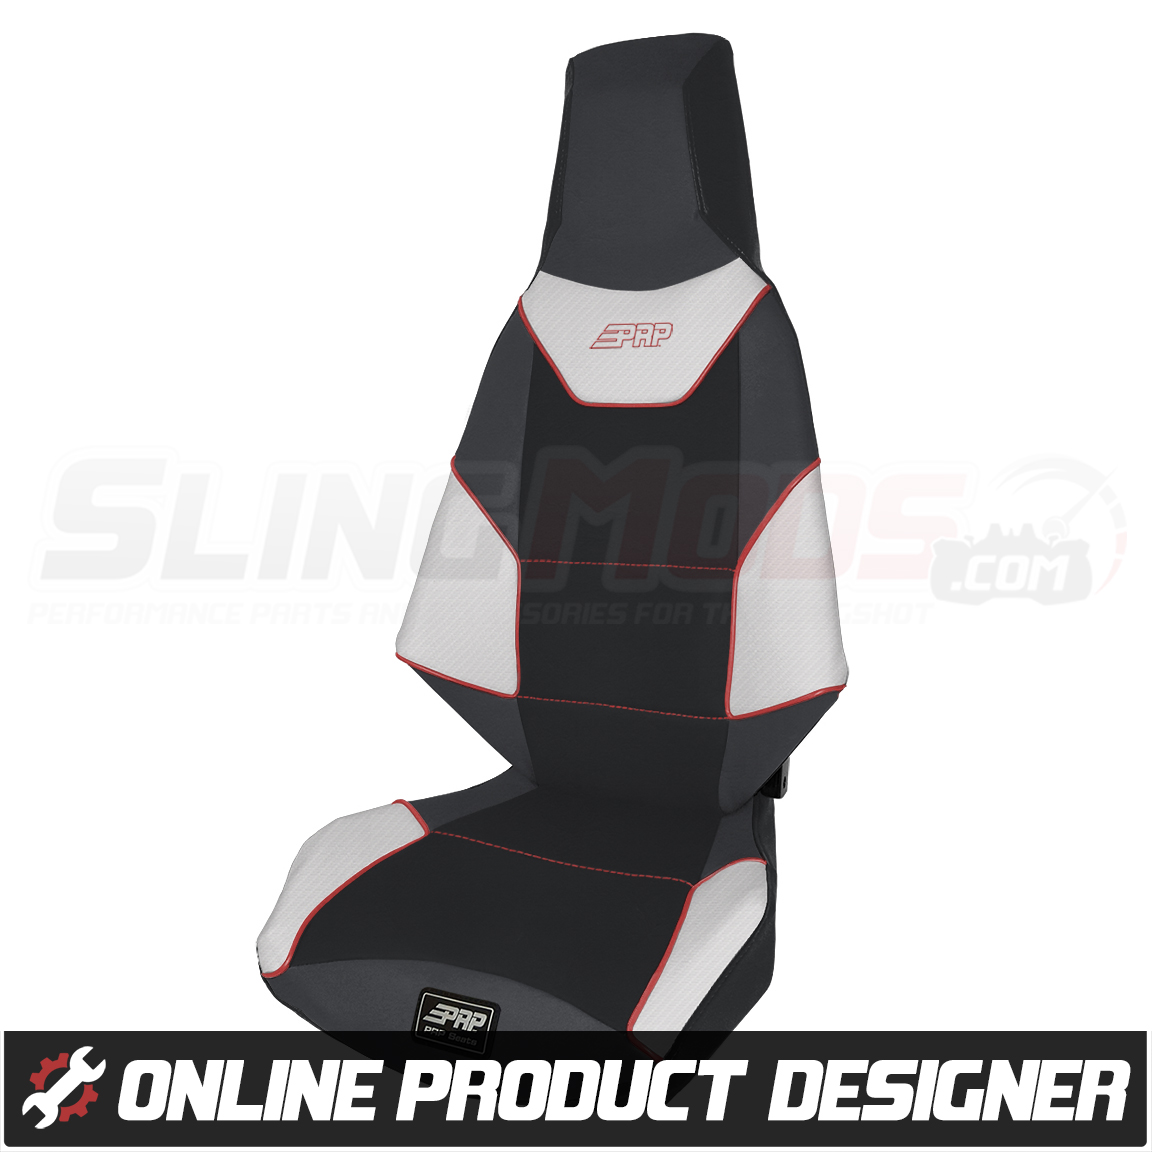 Prp Customizable Seat Covers For The Polaris Slingshot Pair